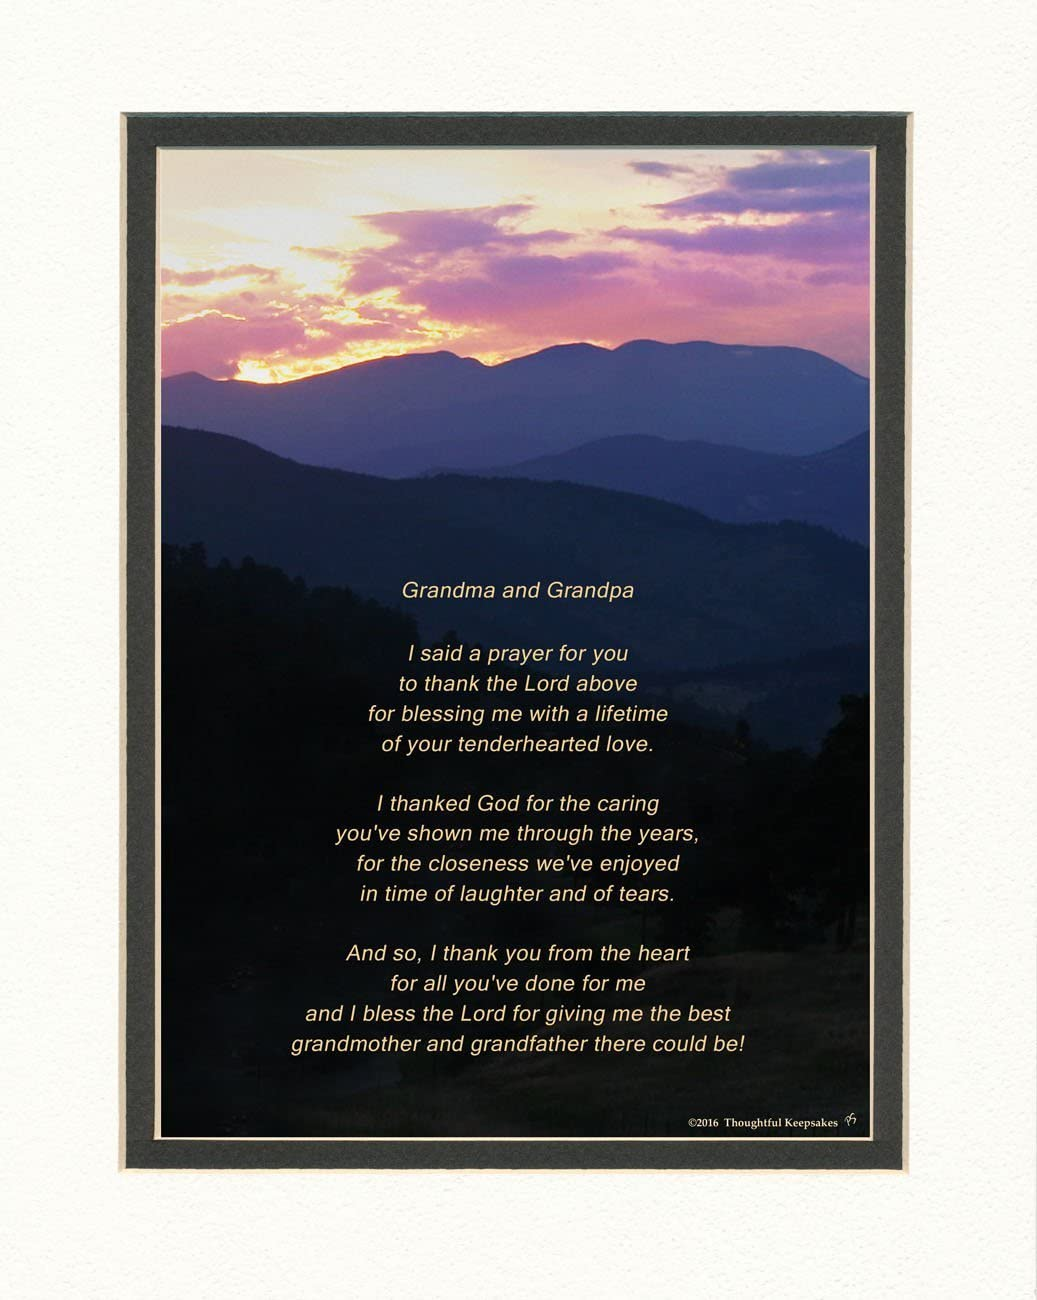 Grandmother & Grandfather Gift for Grandparents with Thank You Prayer for Best Grandma & Grandpa Poem. MTS Sunset Photo, 8x10 Matted. Grandparents Day Gift, Christmas, Wedding, Appreciation